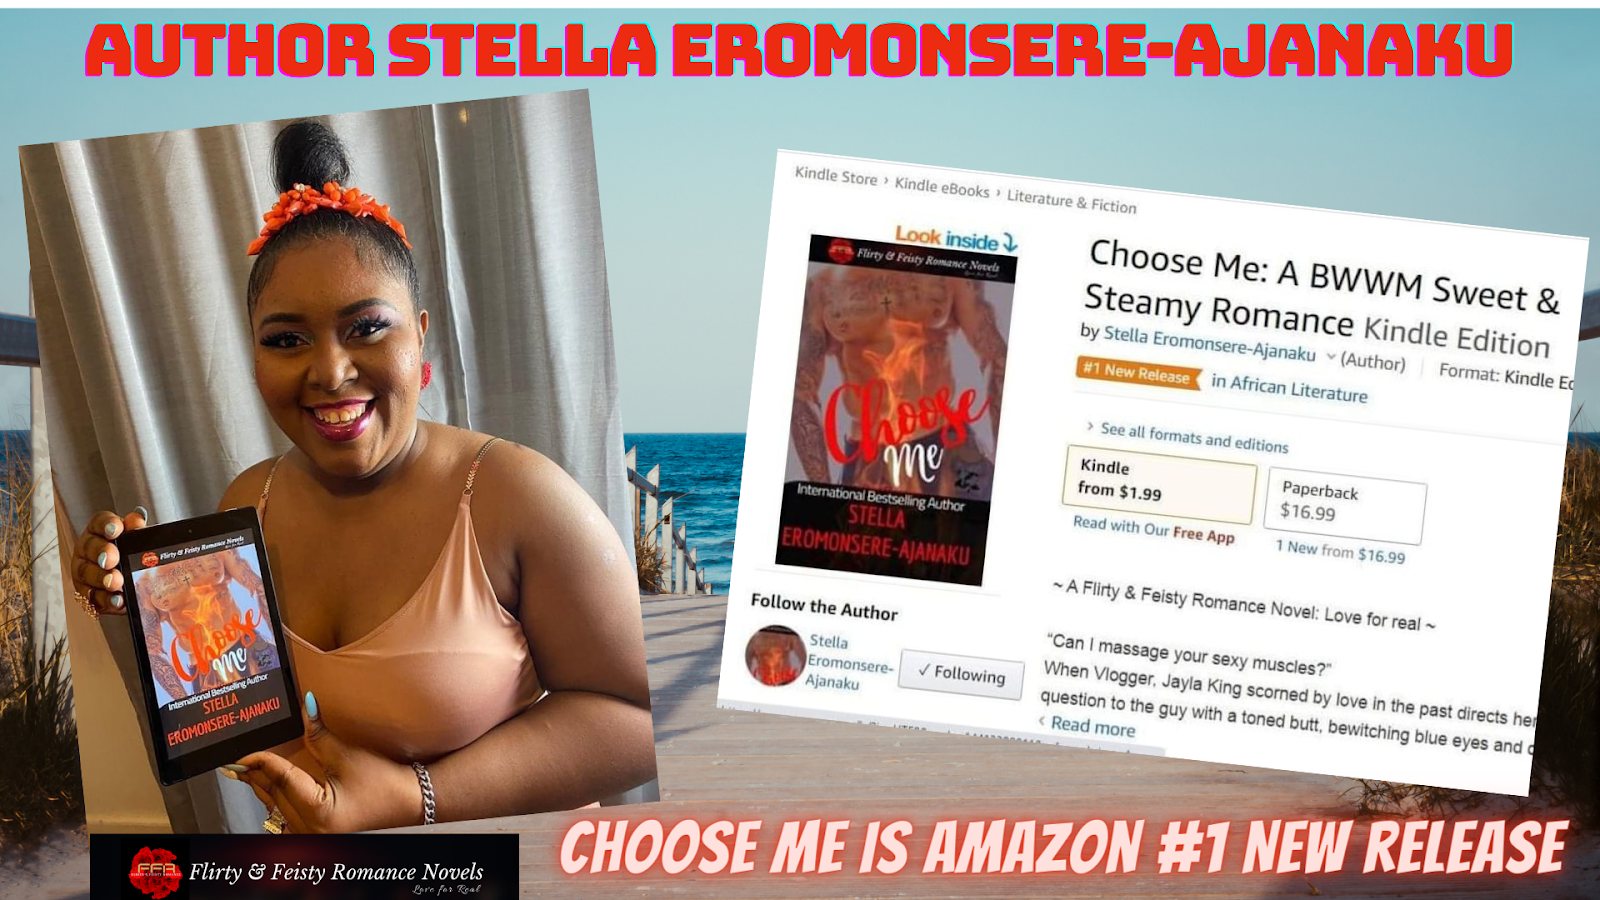 🔥🔥🔥🔥 Choose Me was Amazon #1 New Release 🔥🔥🔥🔥